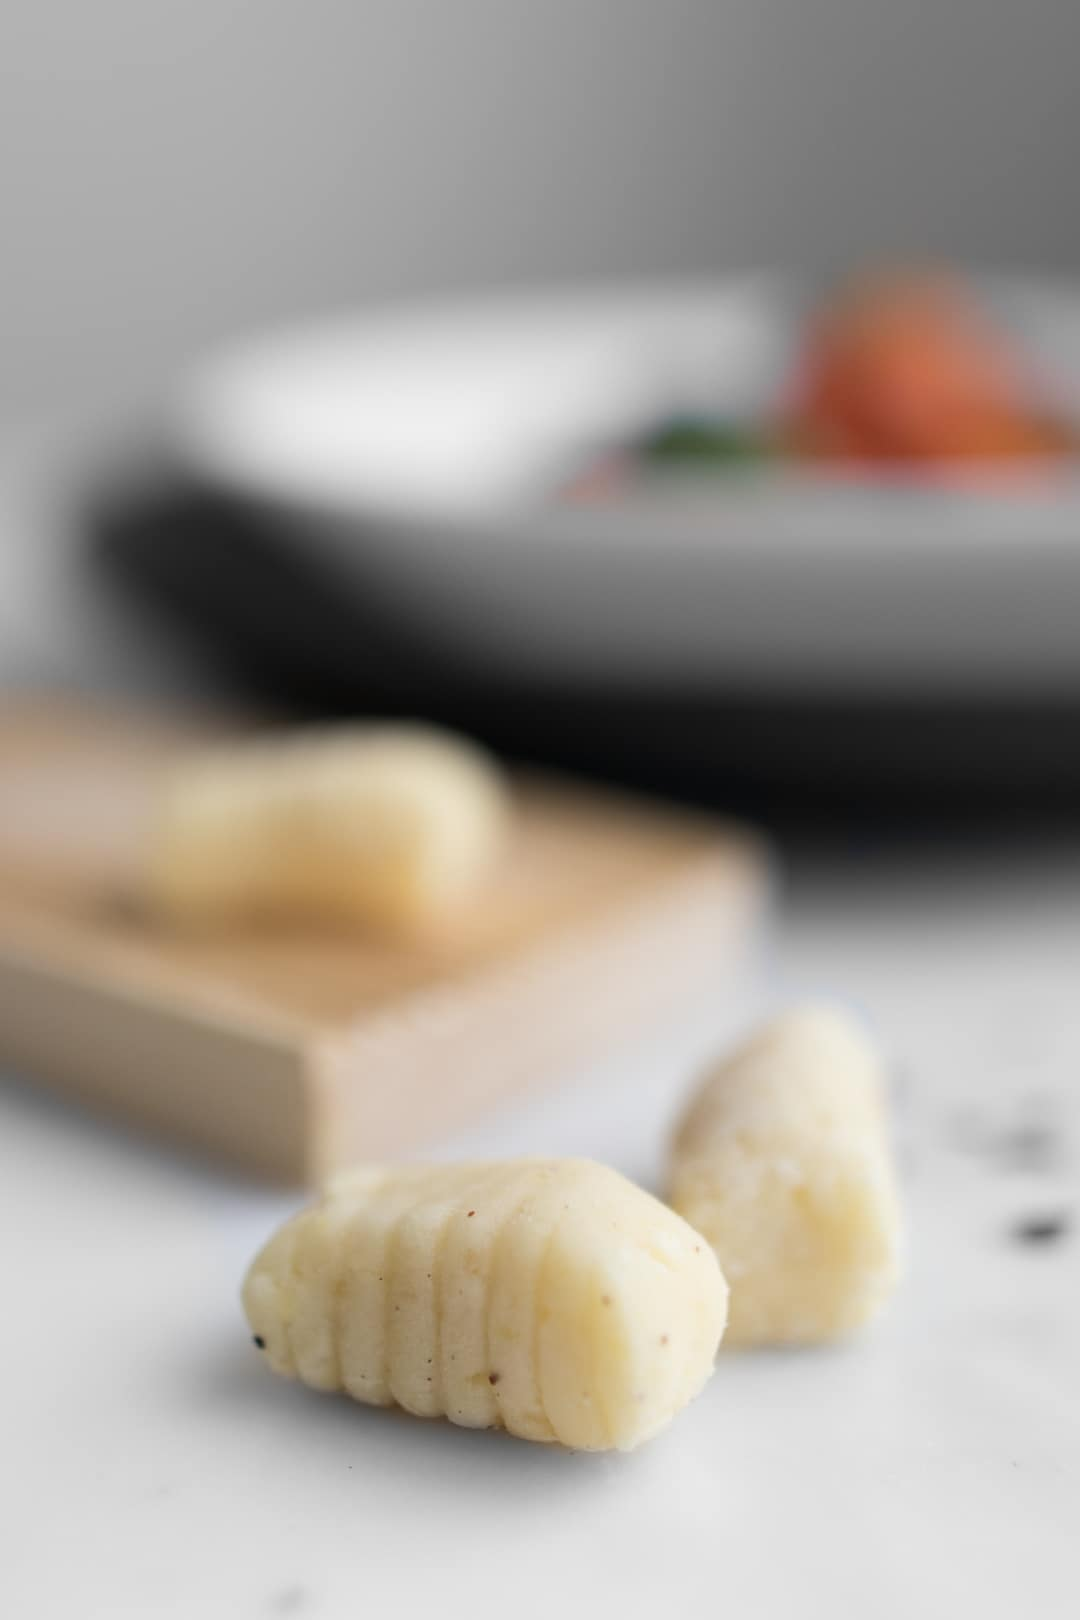 Uncooked gluten-free gnocchi with a gnocchi shaping board.